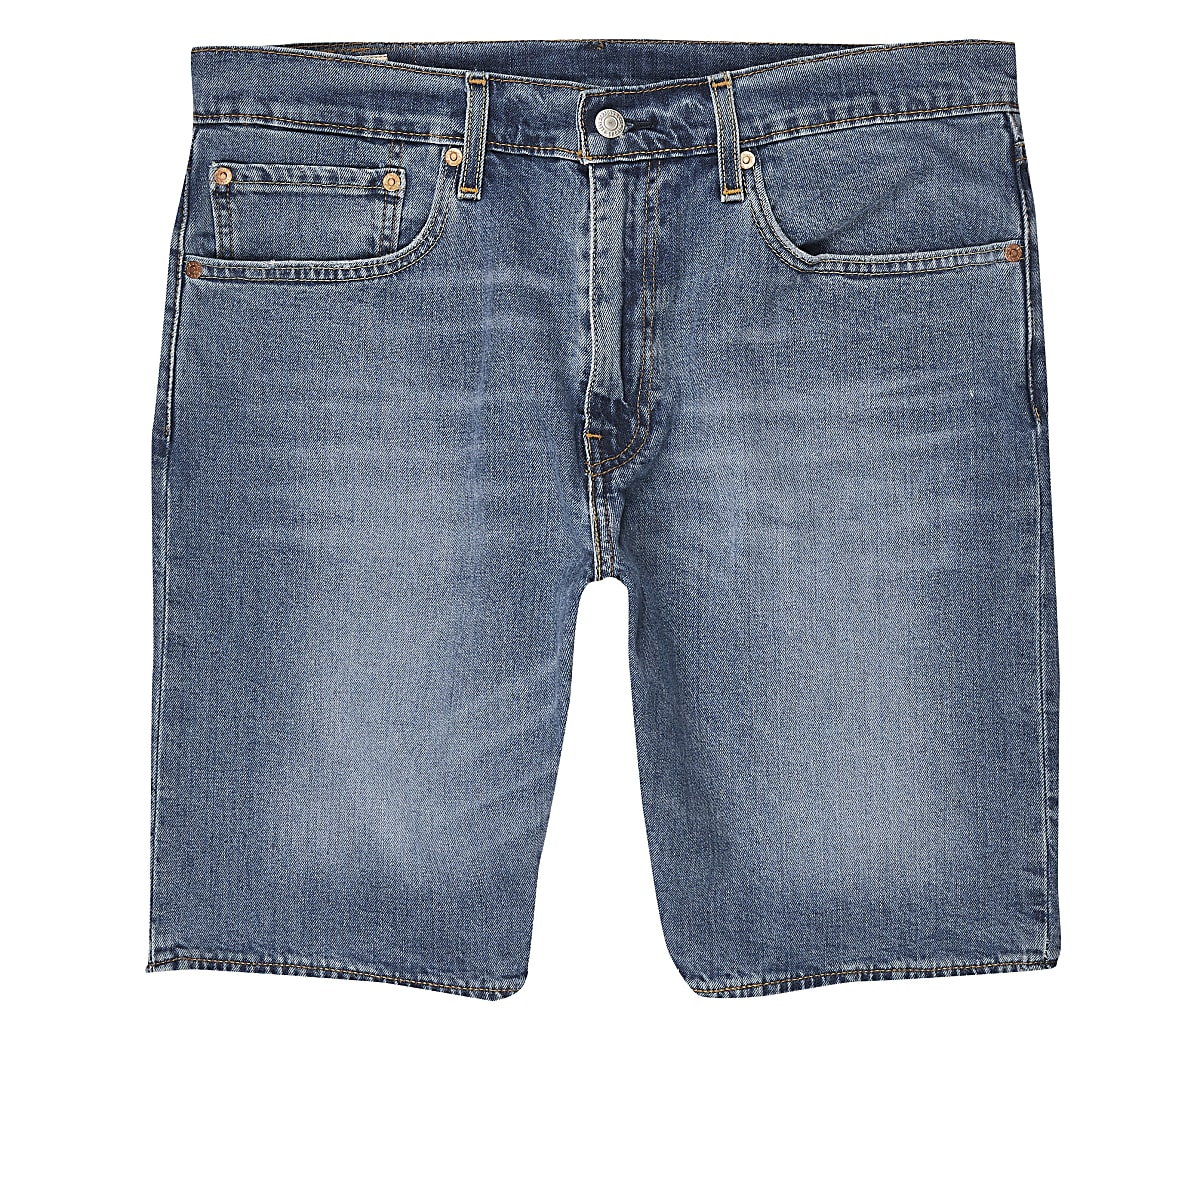 Levi's light blue 502 tapered denim shorts